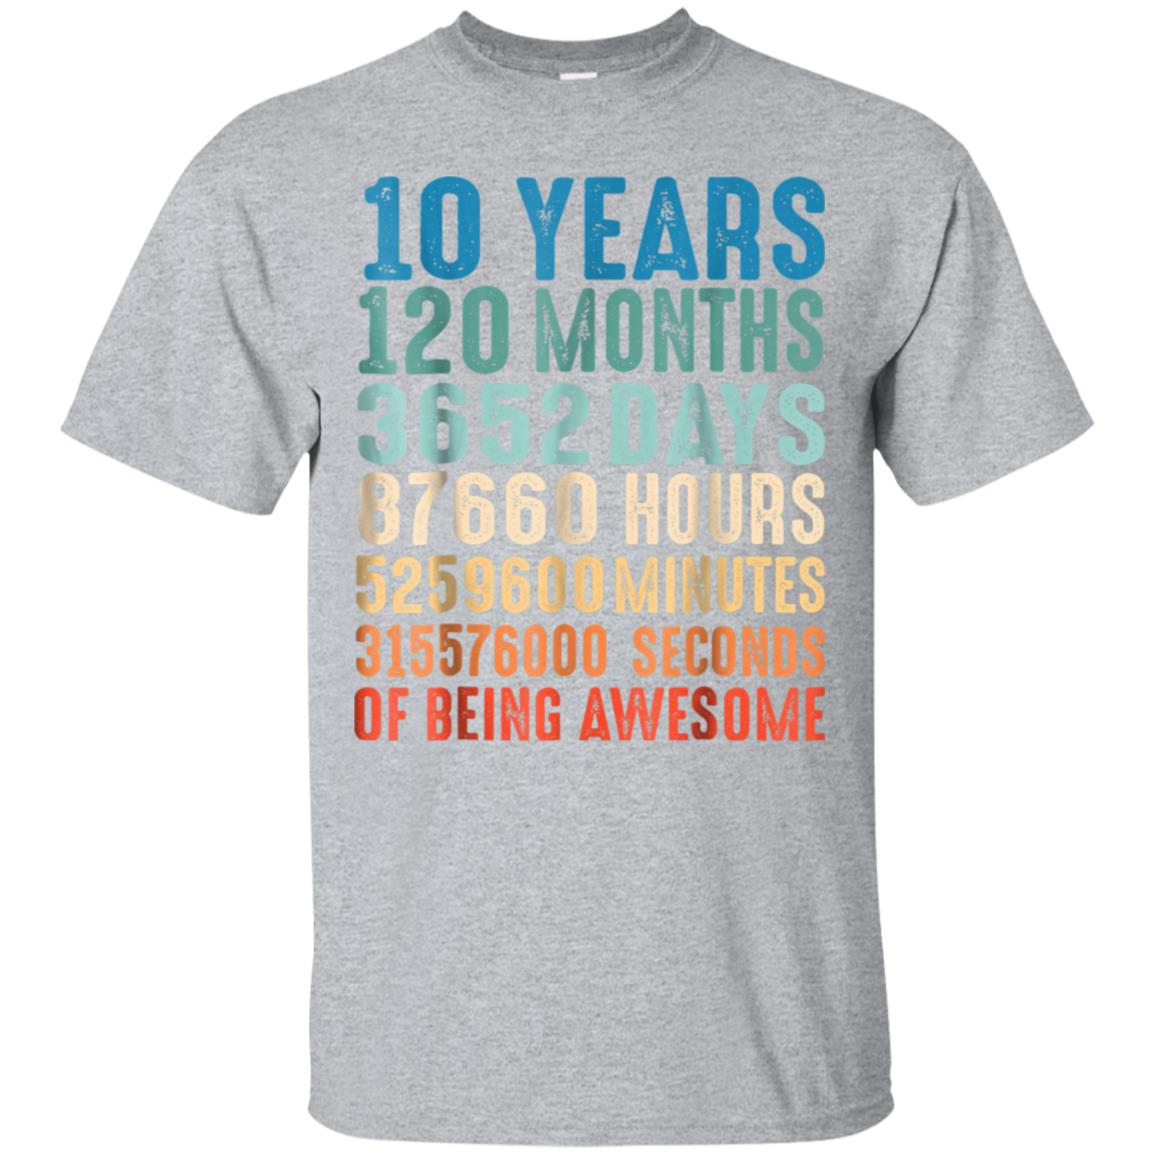 10 Years Old 10th Birthday Vintage Retro T Shirt 120 Months 99promocode